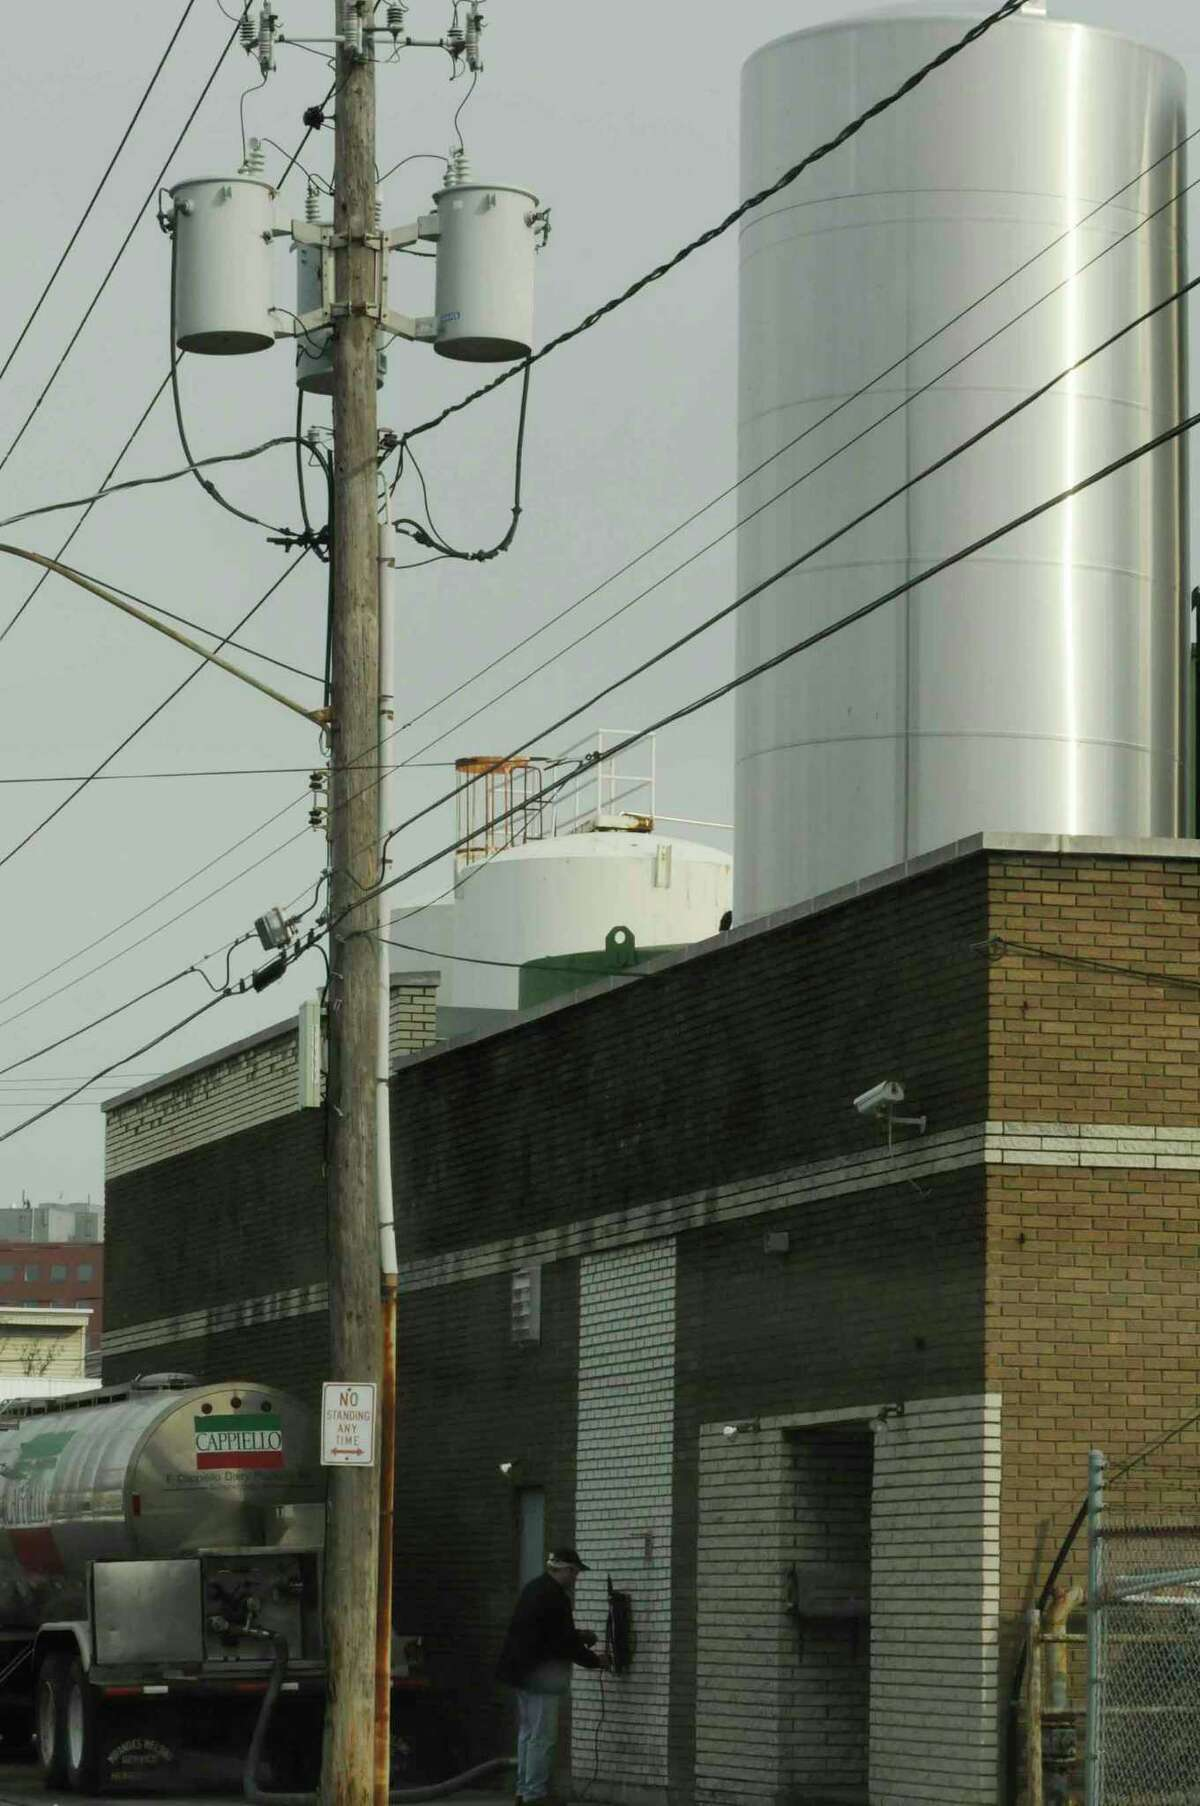 BelGioioso Cheese makes the Cappiello brand of mozzarella at this cheese plant in Schenectady. The plant is expected to remain open even after BelGioioso opens a new $25 million facility in Glenville.